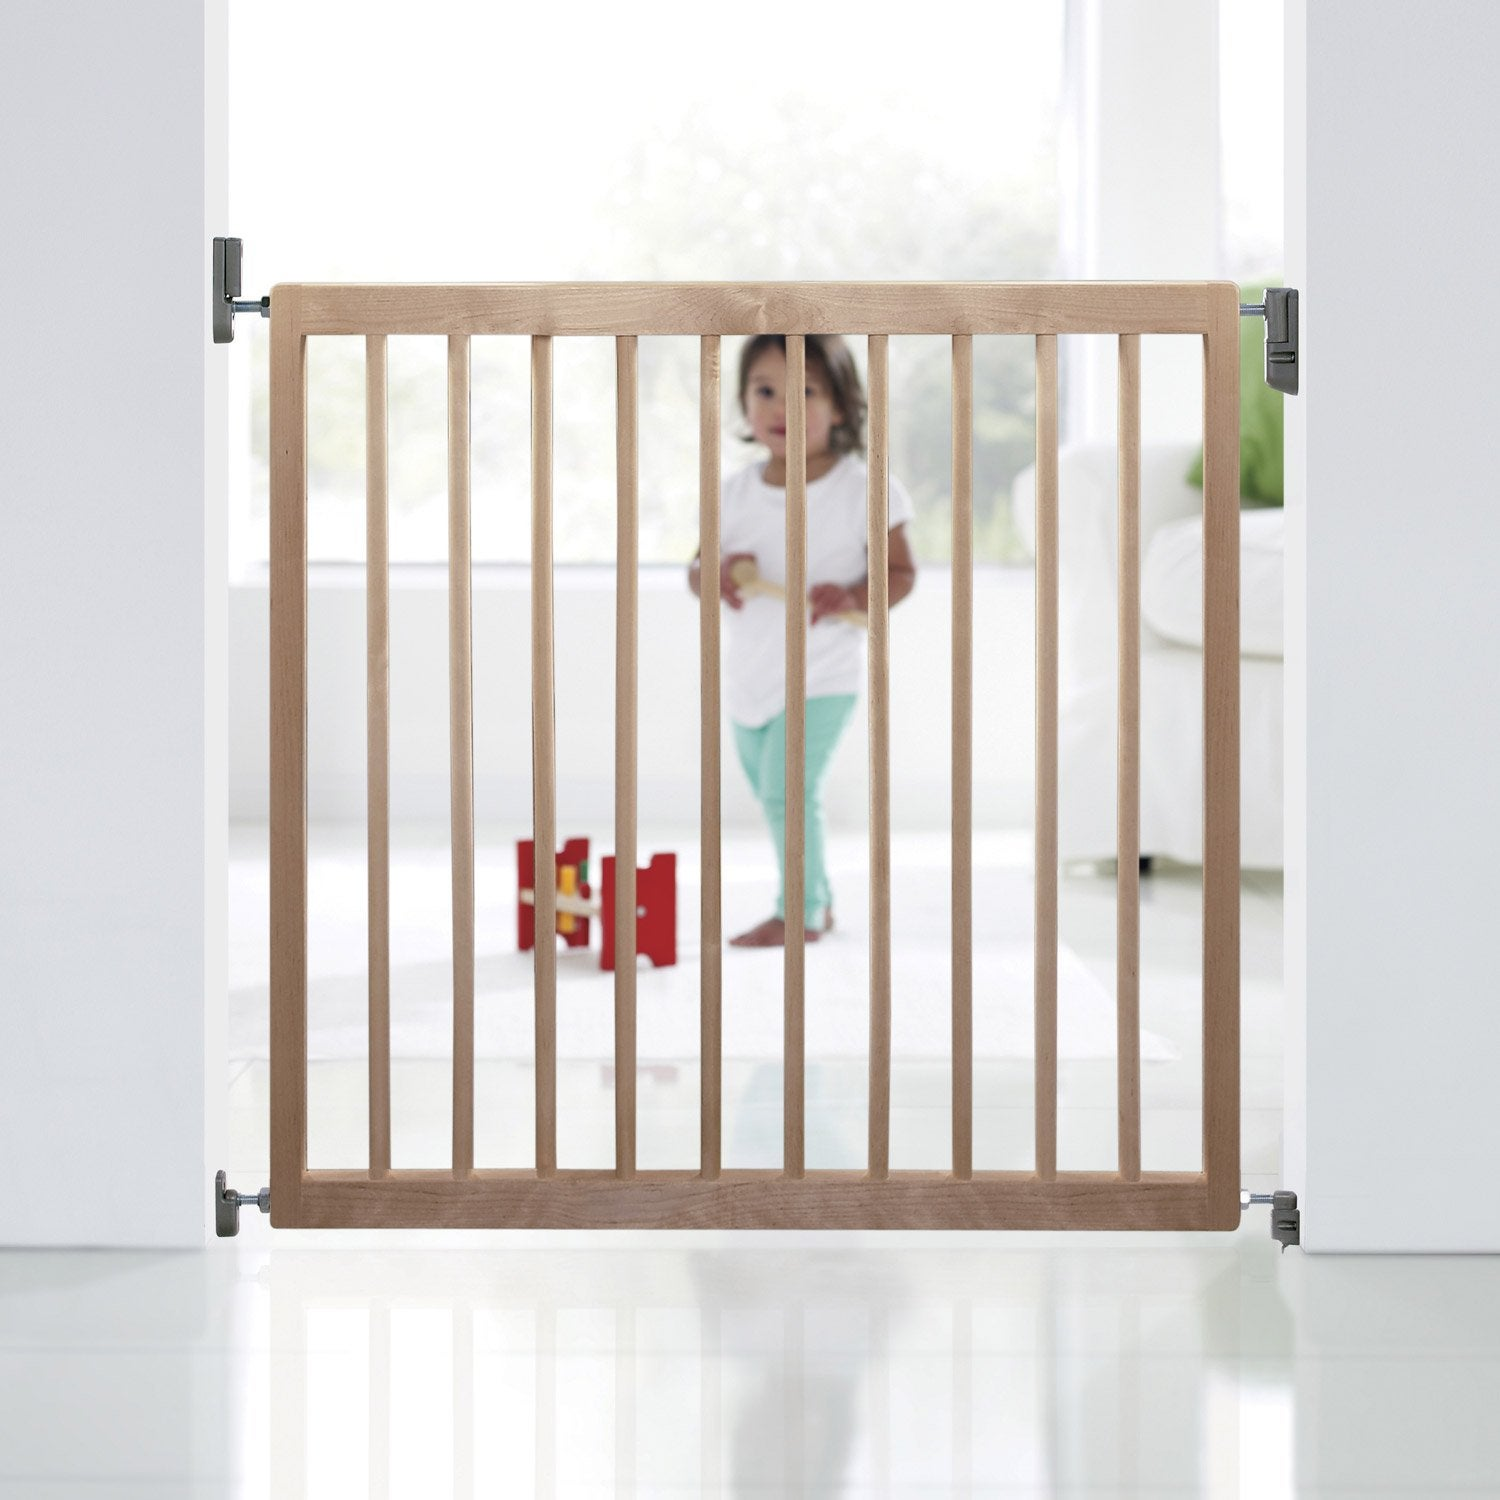 Barriere escalier for Protection enfant piscine